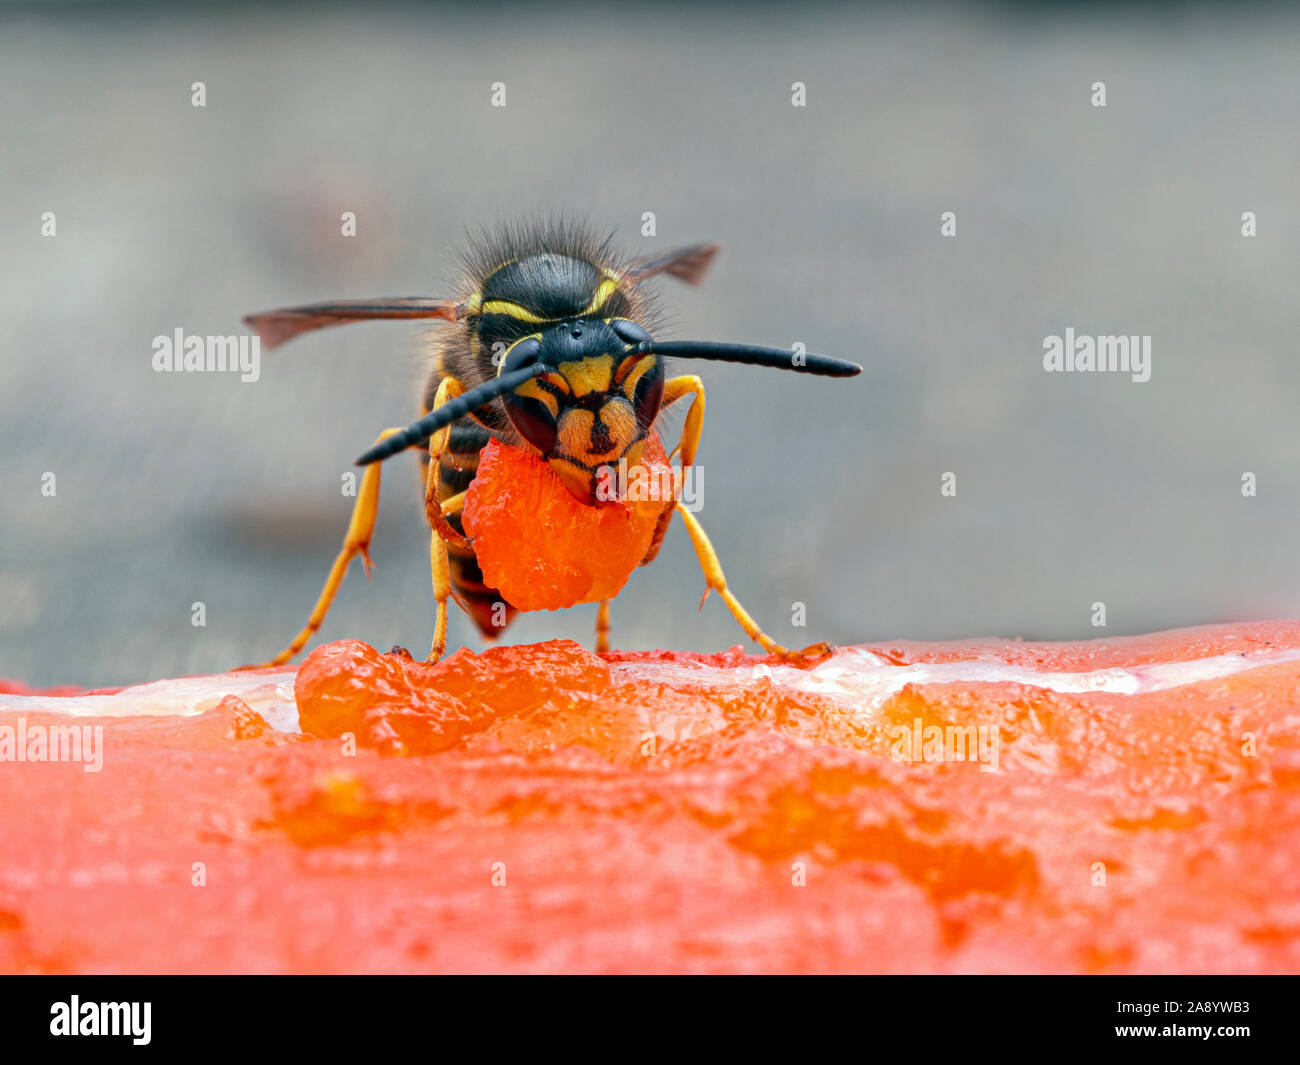 German yellowjacket wasp, Vespula germanica, carrying a piece of sockeye salmon flesh it chewed off of a salmon carcass to take back to its nest to fe Stock Photo